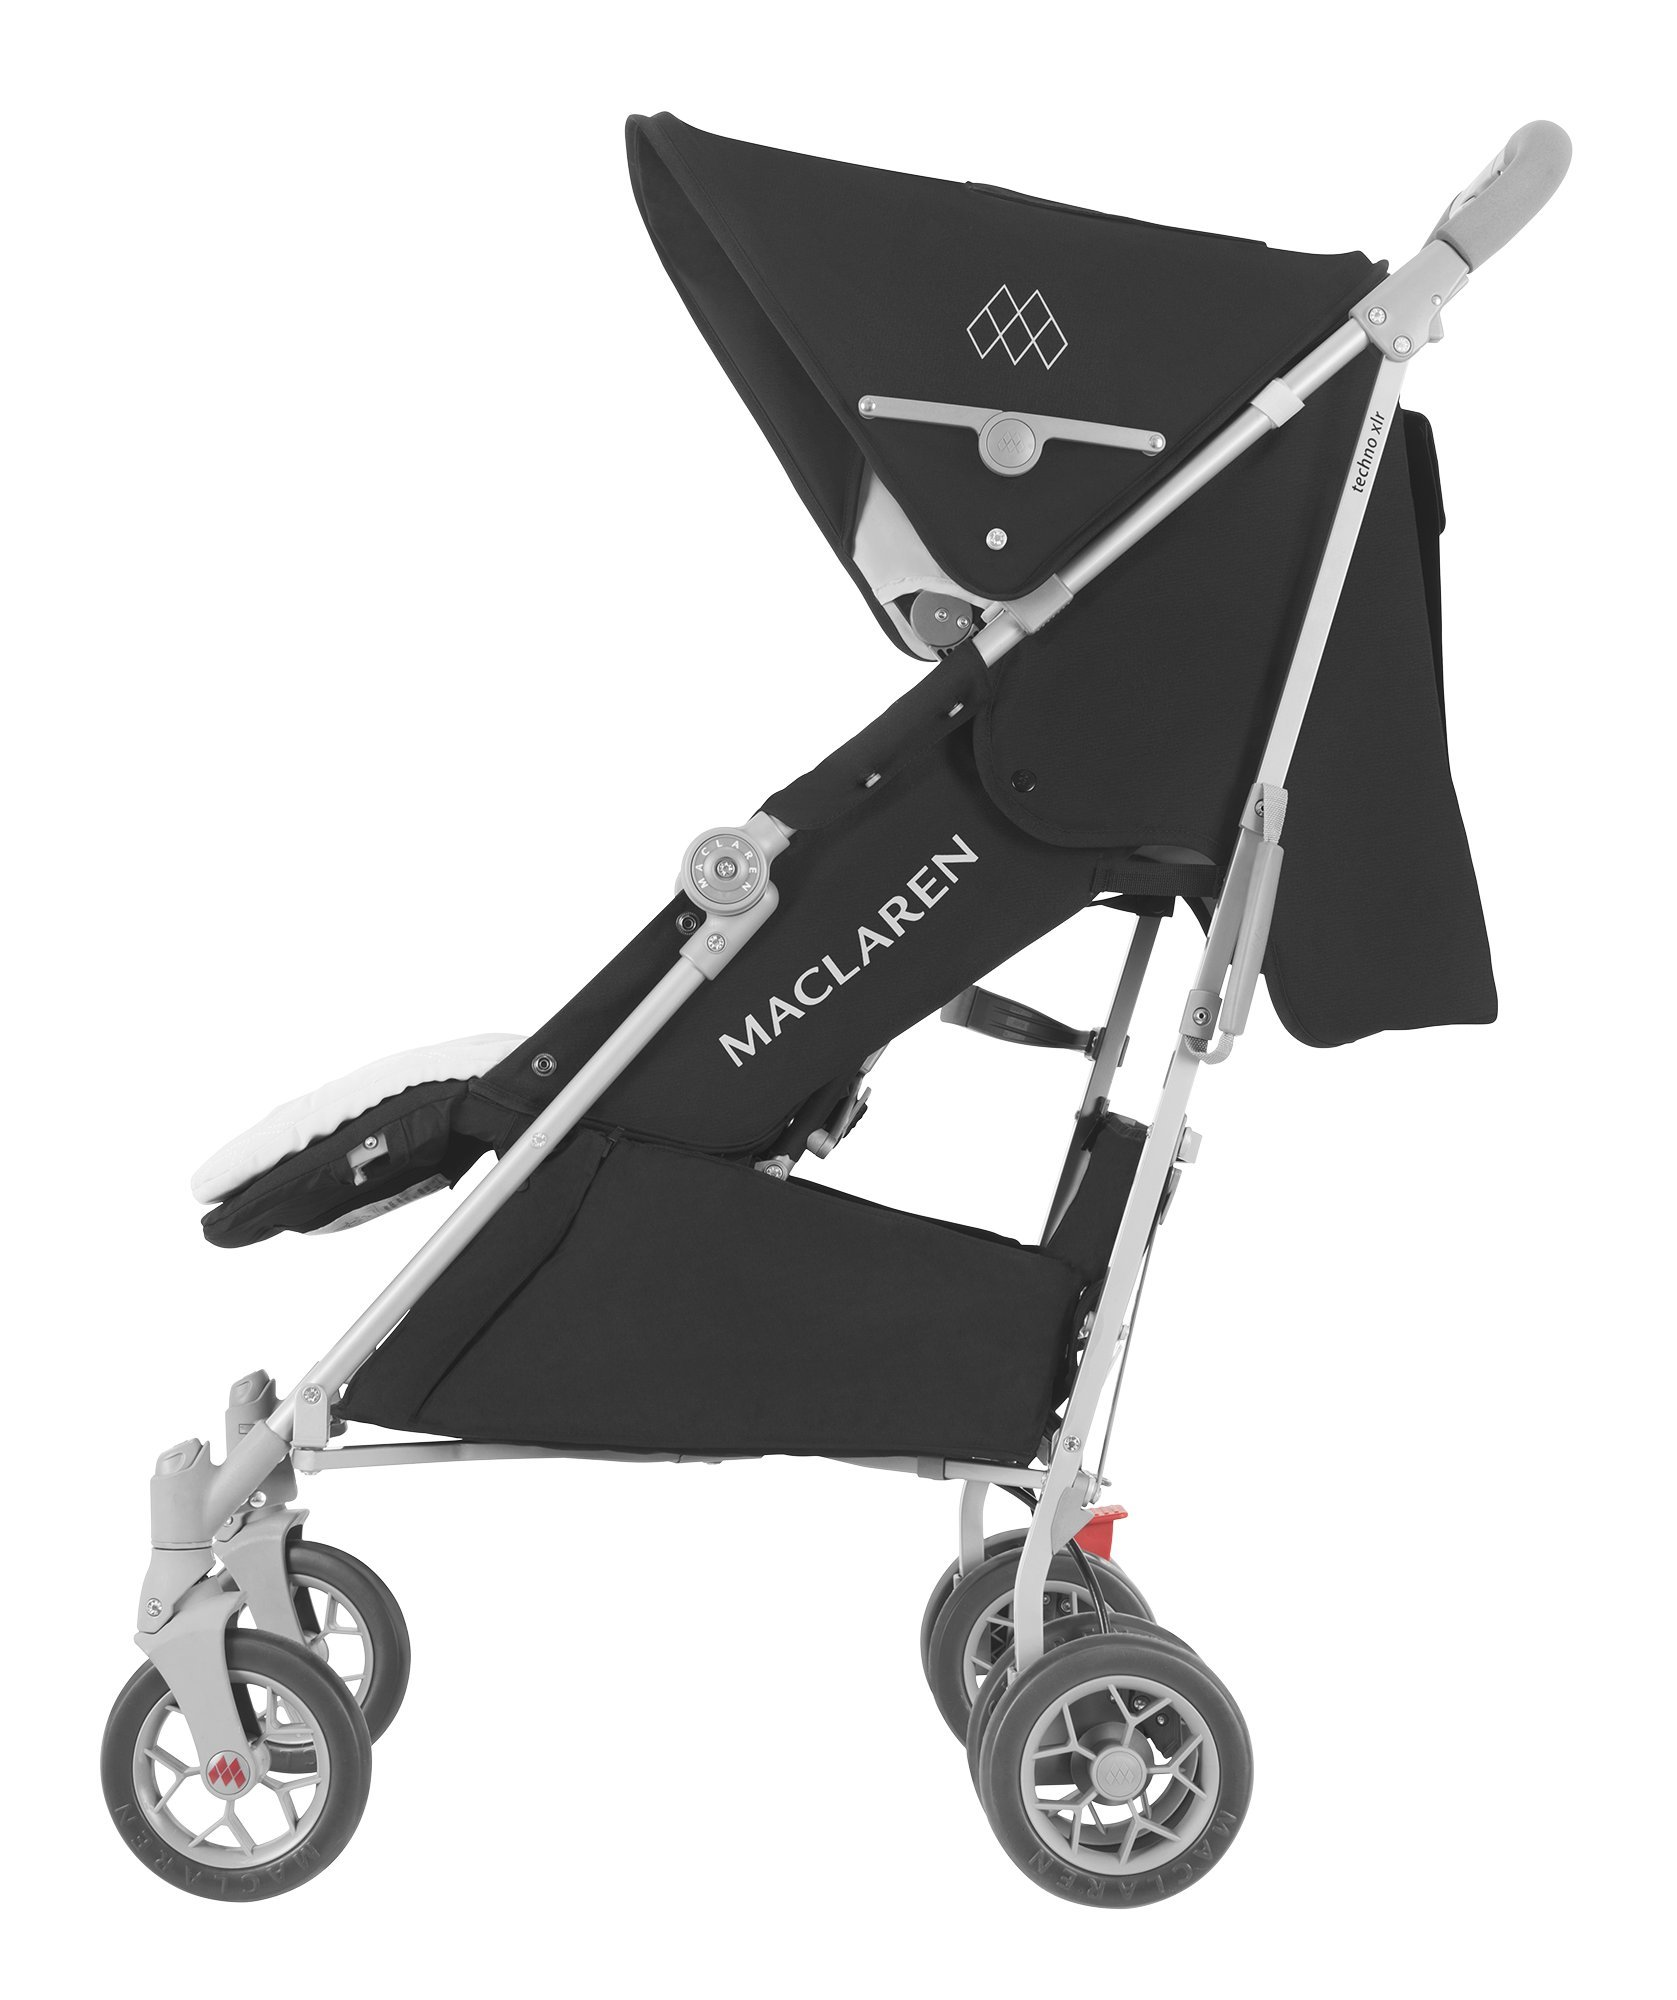 Maclaren Techno XLR arc Travel System Stroller Maclaren Basic weight of 6.7kg/14.8lb; ideal for new-borns and children up to 25kg/55lb (usa 65lb) Maclaren is the only brand to offer a sovereign lifetime warranty Extendable upf 50+ sun canopy and built-in sun visor 2